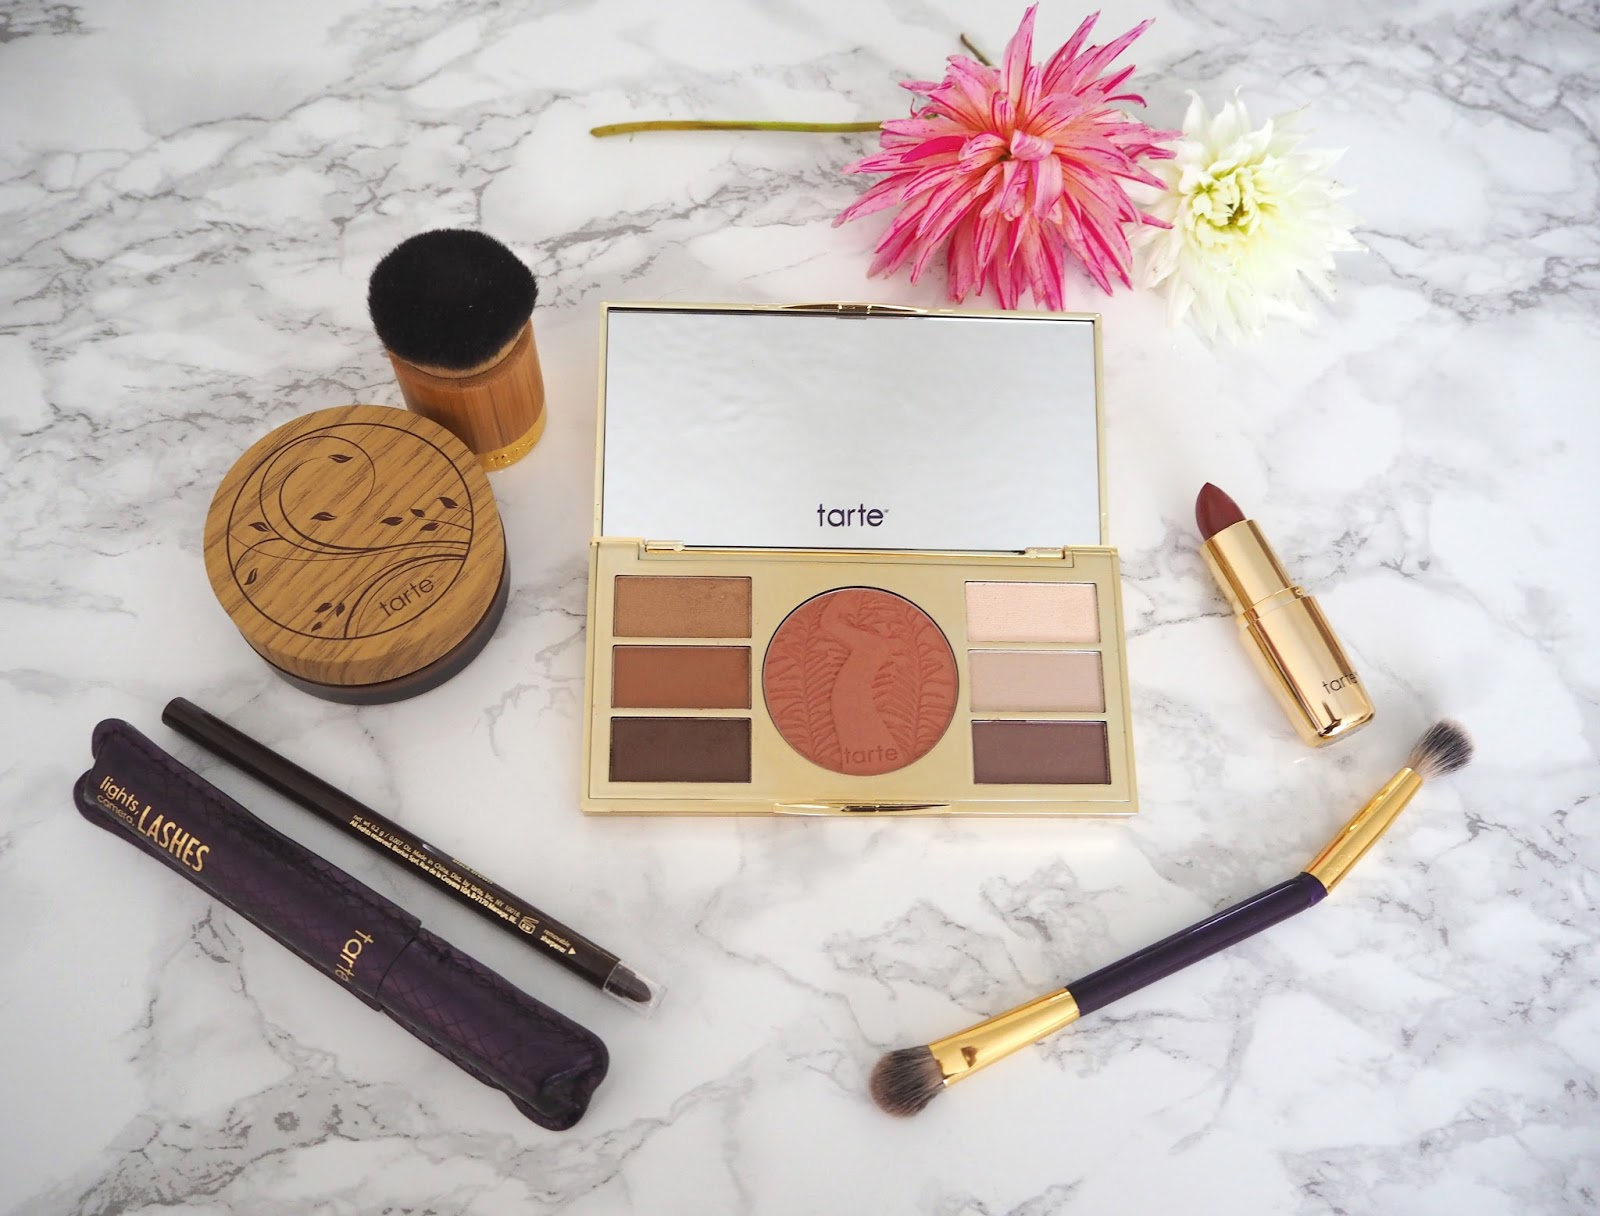 Tarte Cosmetics Makeup Set | Katie Kirk Loves